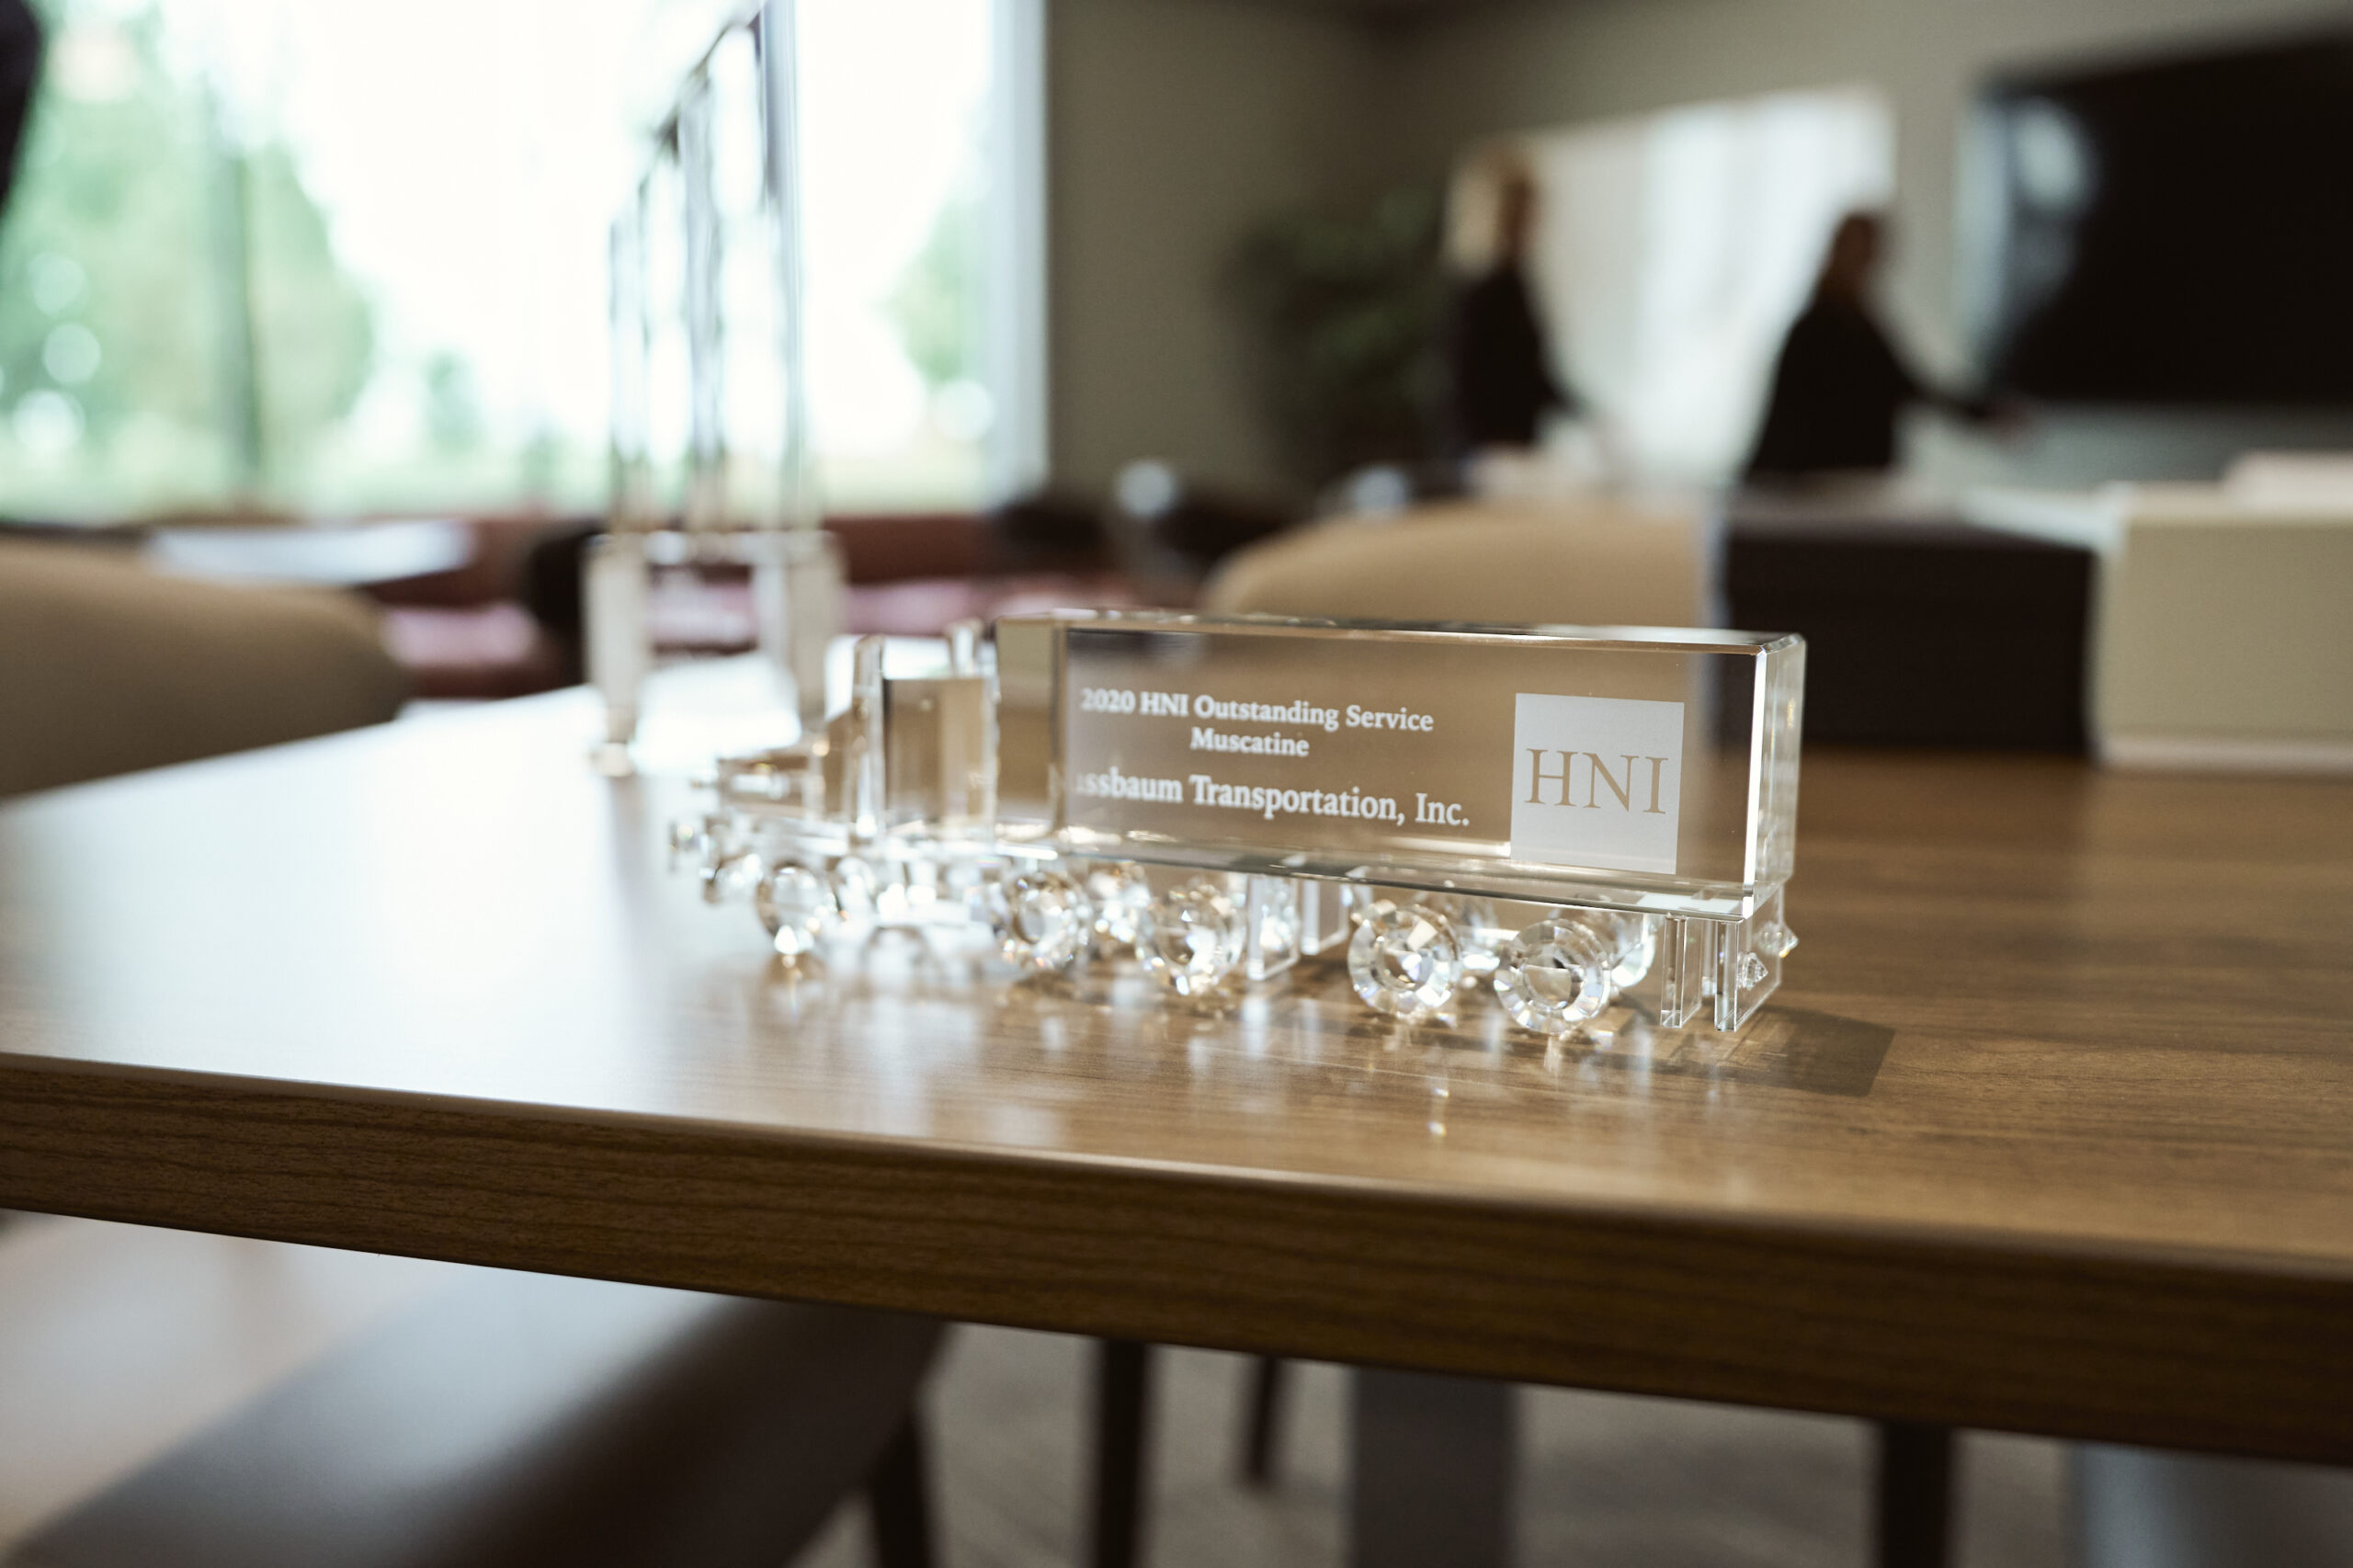 Nussbaum is HNI's 2020 Carrier of the Year